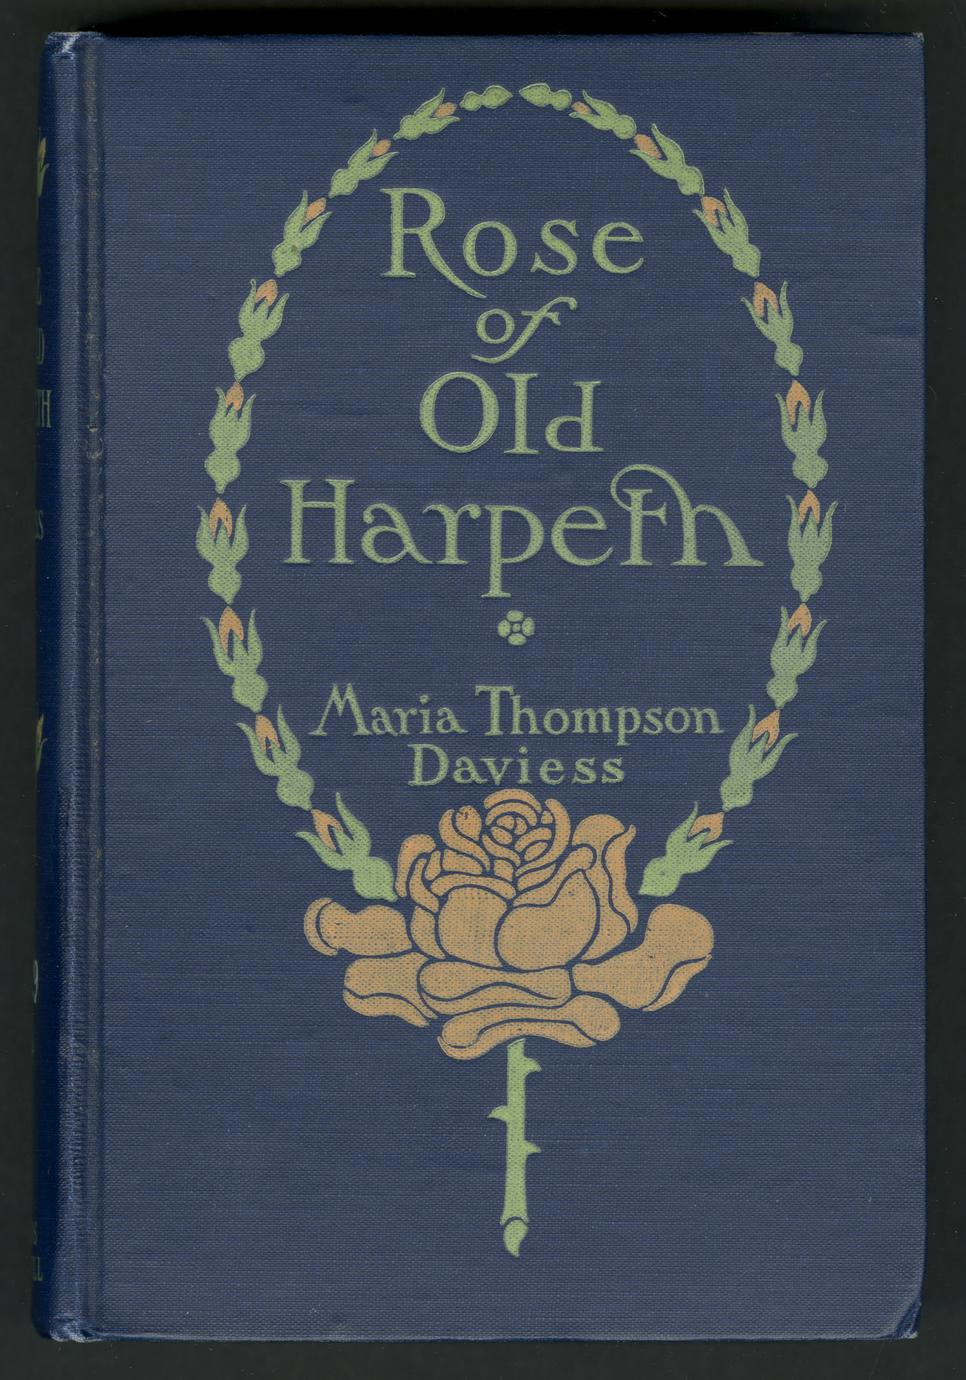 Rose of Old Harpeth (1 of 2)